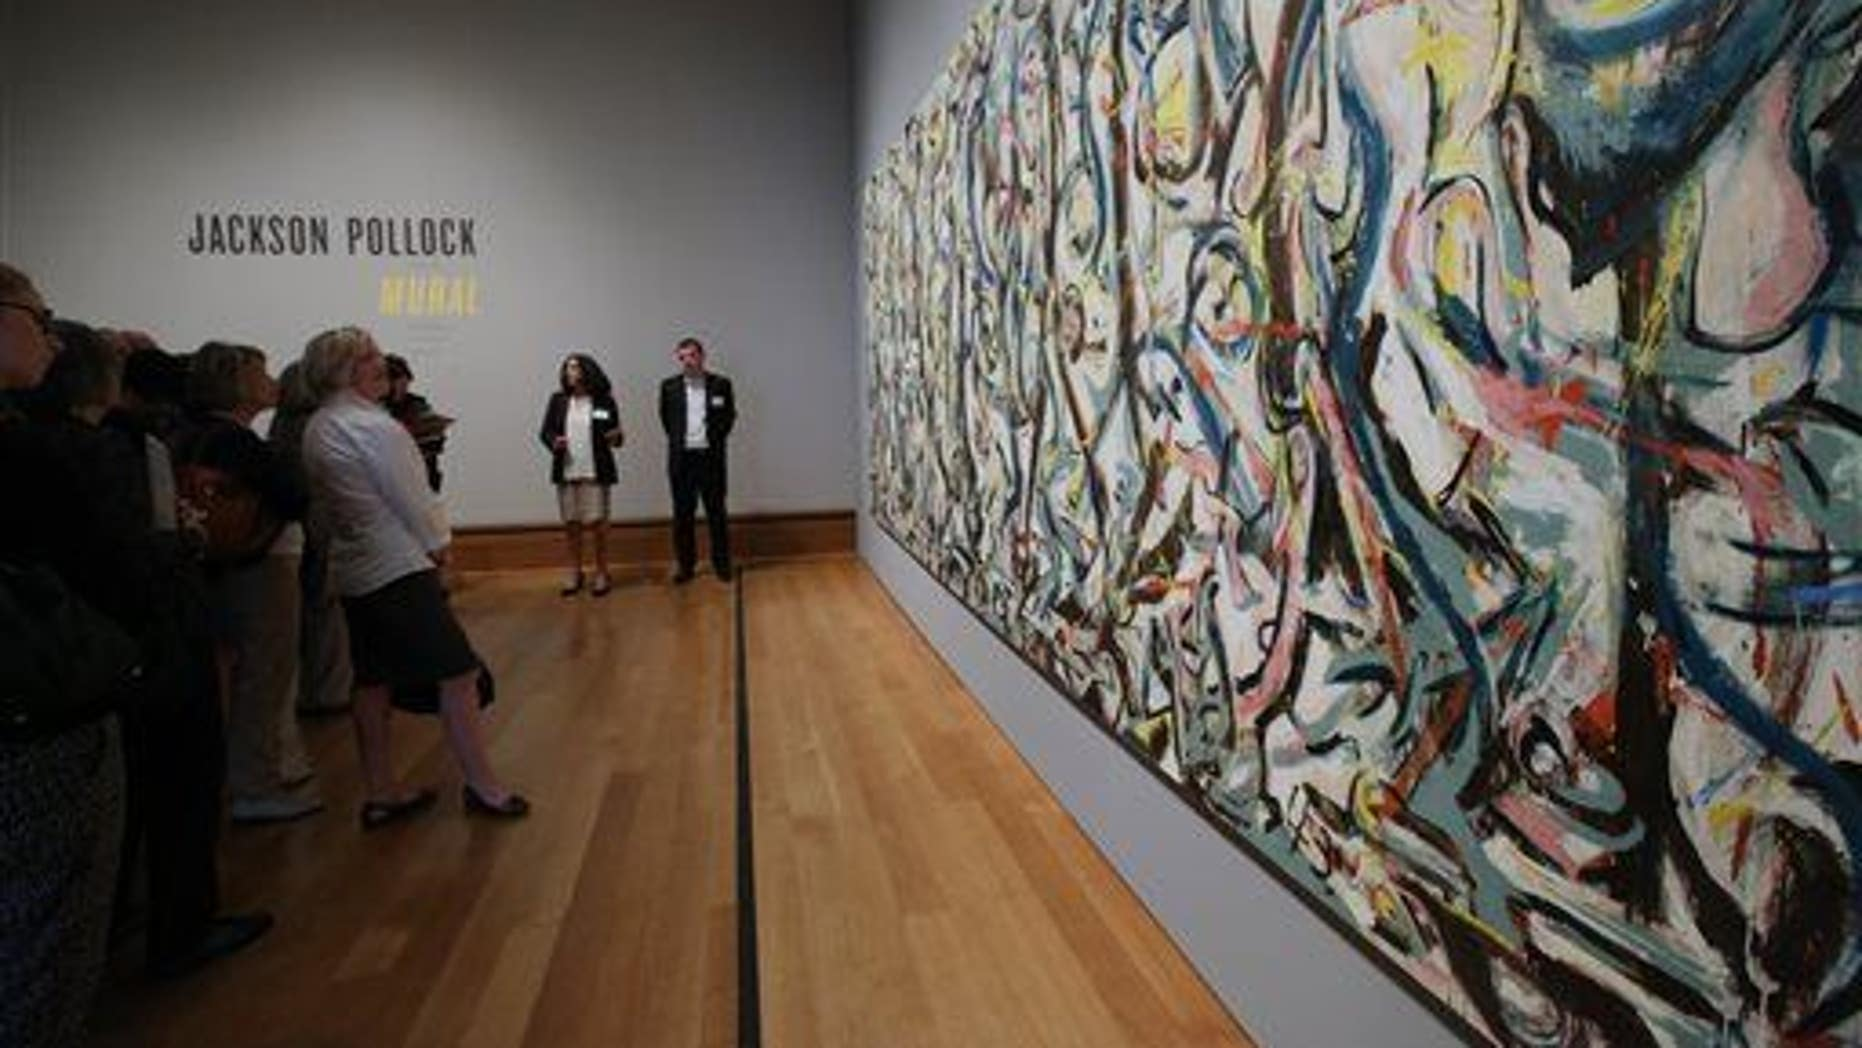 Members of the media preview Jackson Pollock's ���Mural,��� 1943, at the J. Paul Getty Museum in Los Angeles on Monday, March 10, 2014.